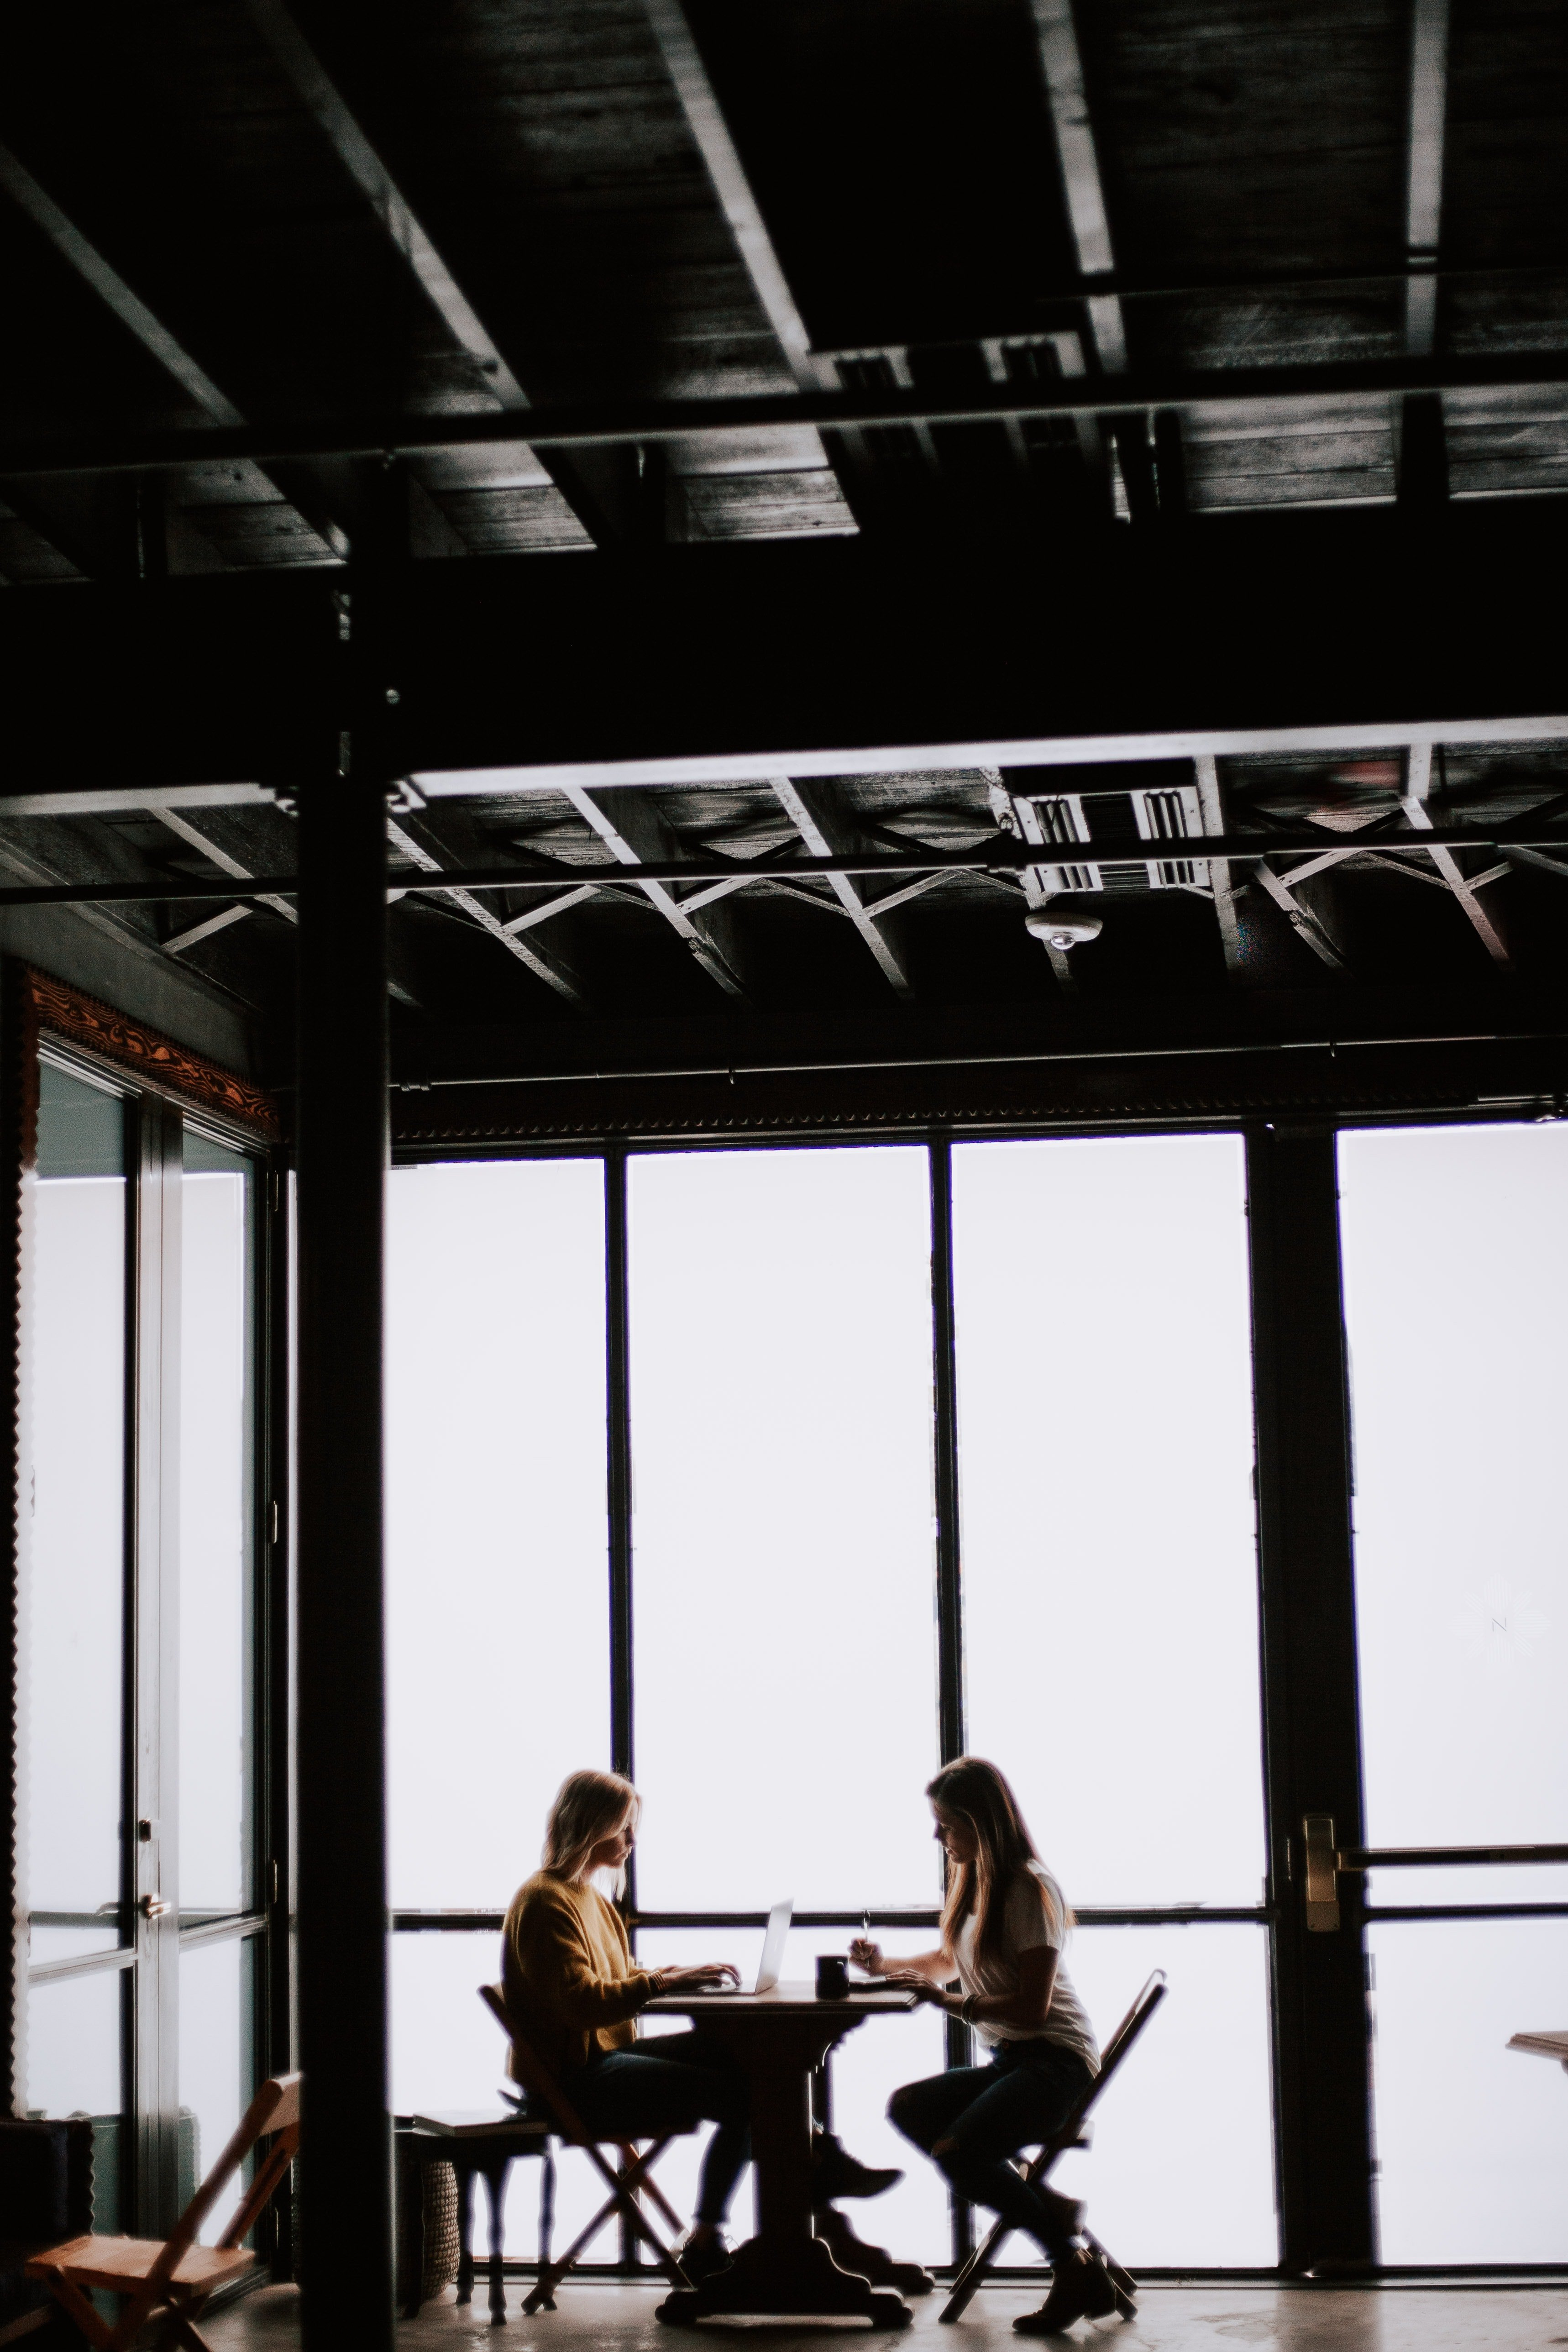 Two young women talking in a café | Photo: Unsplash